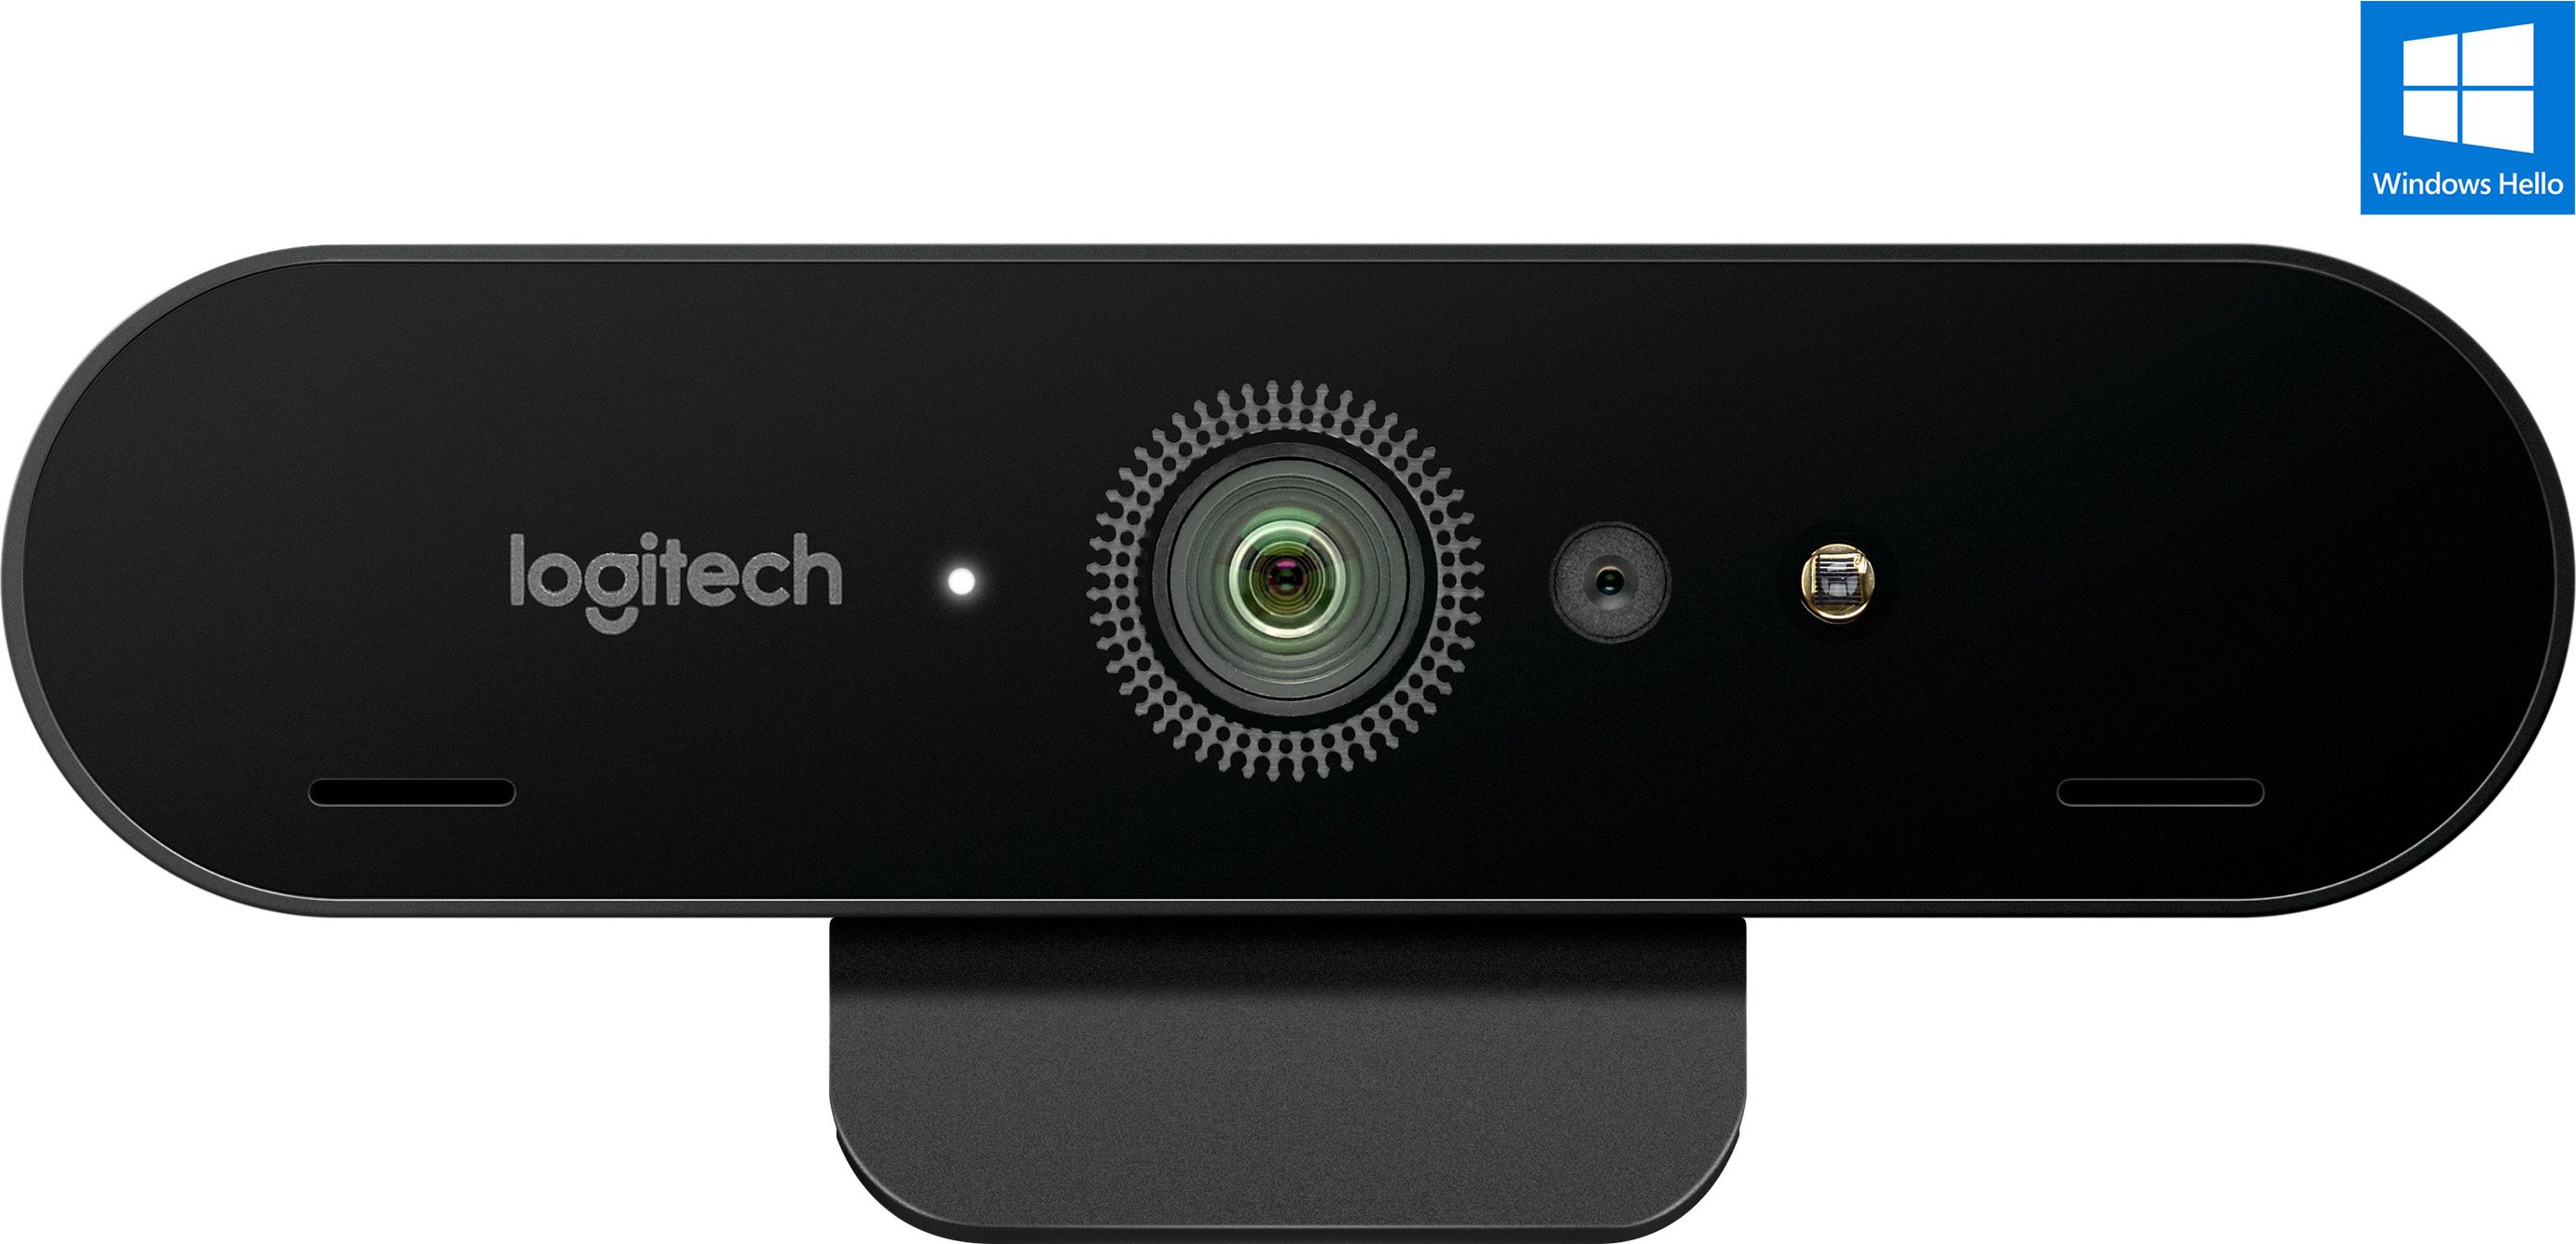 Logitech BRIO 4K Ultra HD Webcam - Certified for Windows Hello